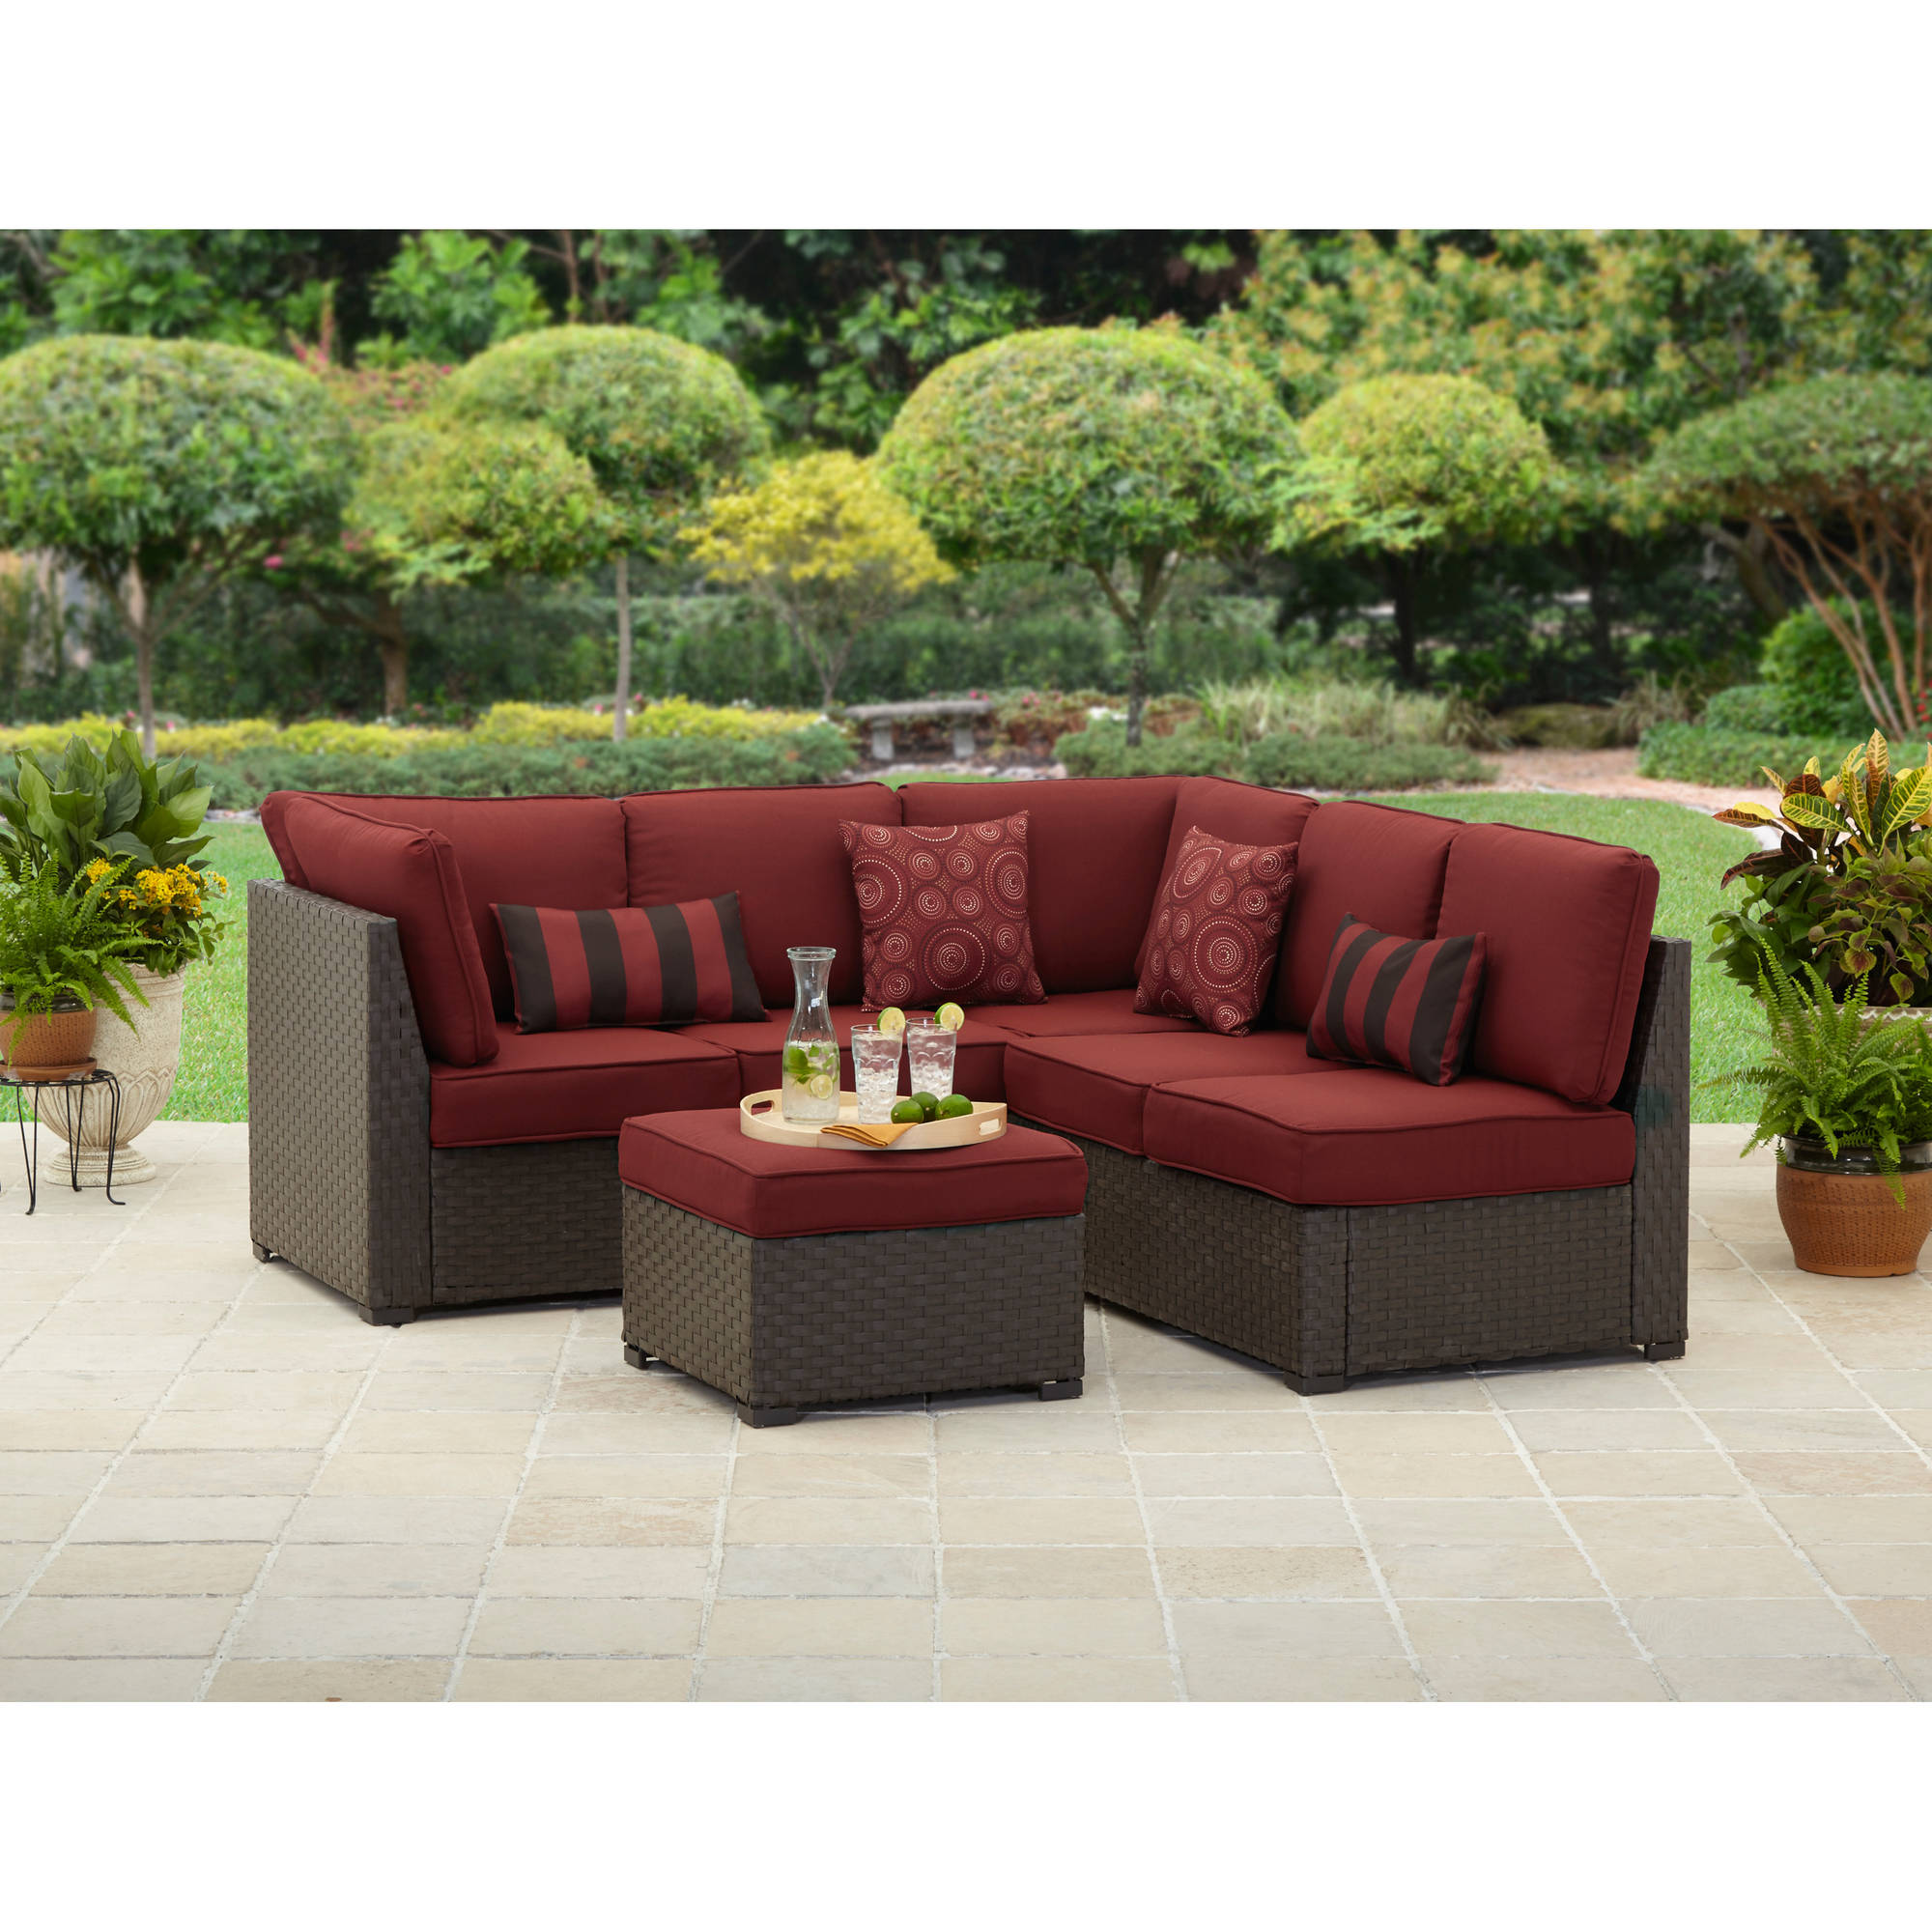 Better Homes and Gardens Rush Valley 3-piece Outdoor Sectional